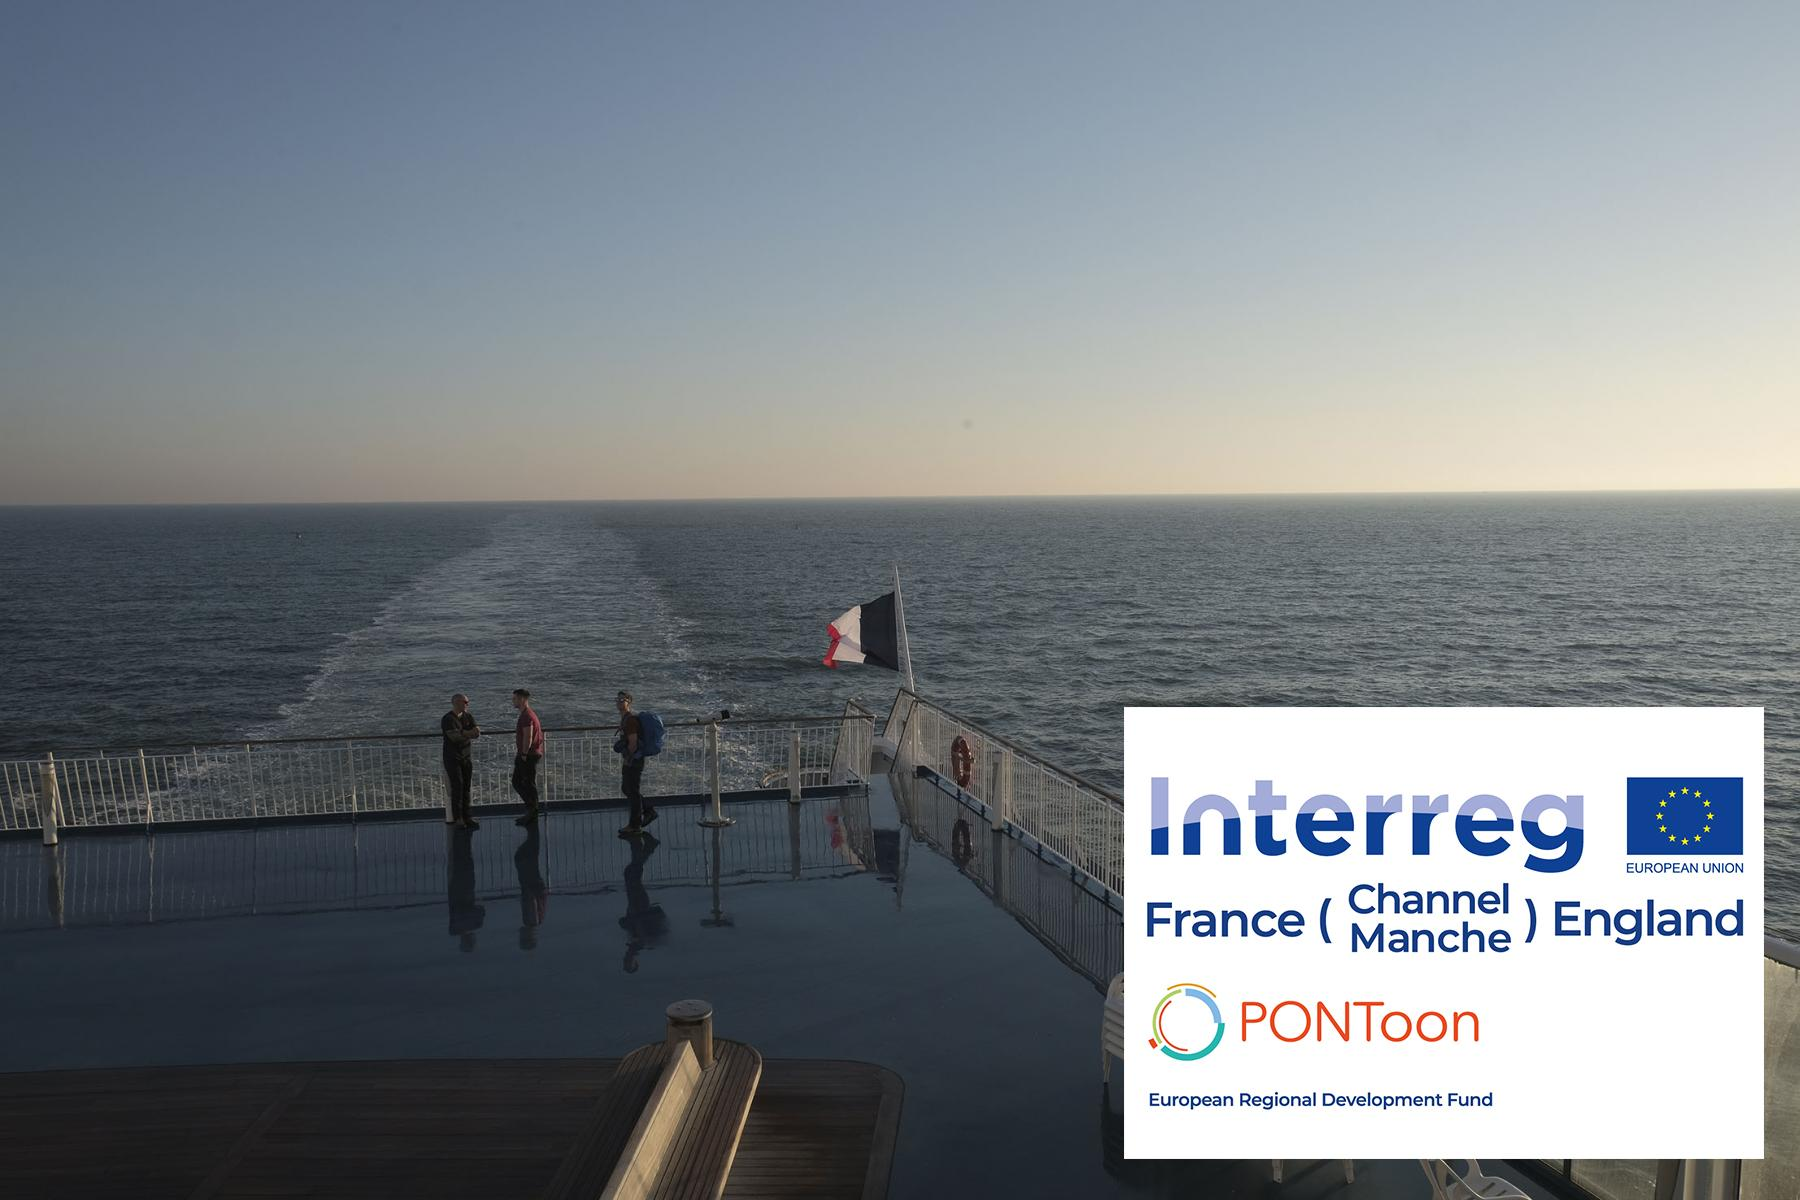 PONToon partners gathered in France for a cross-border meetup